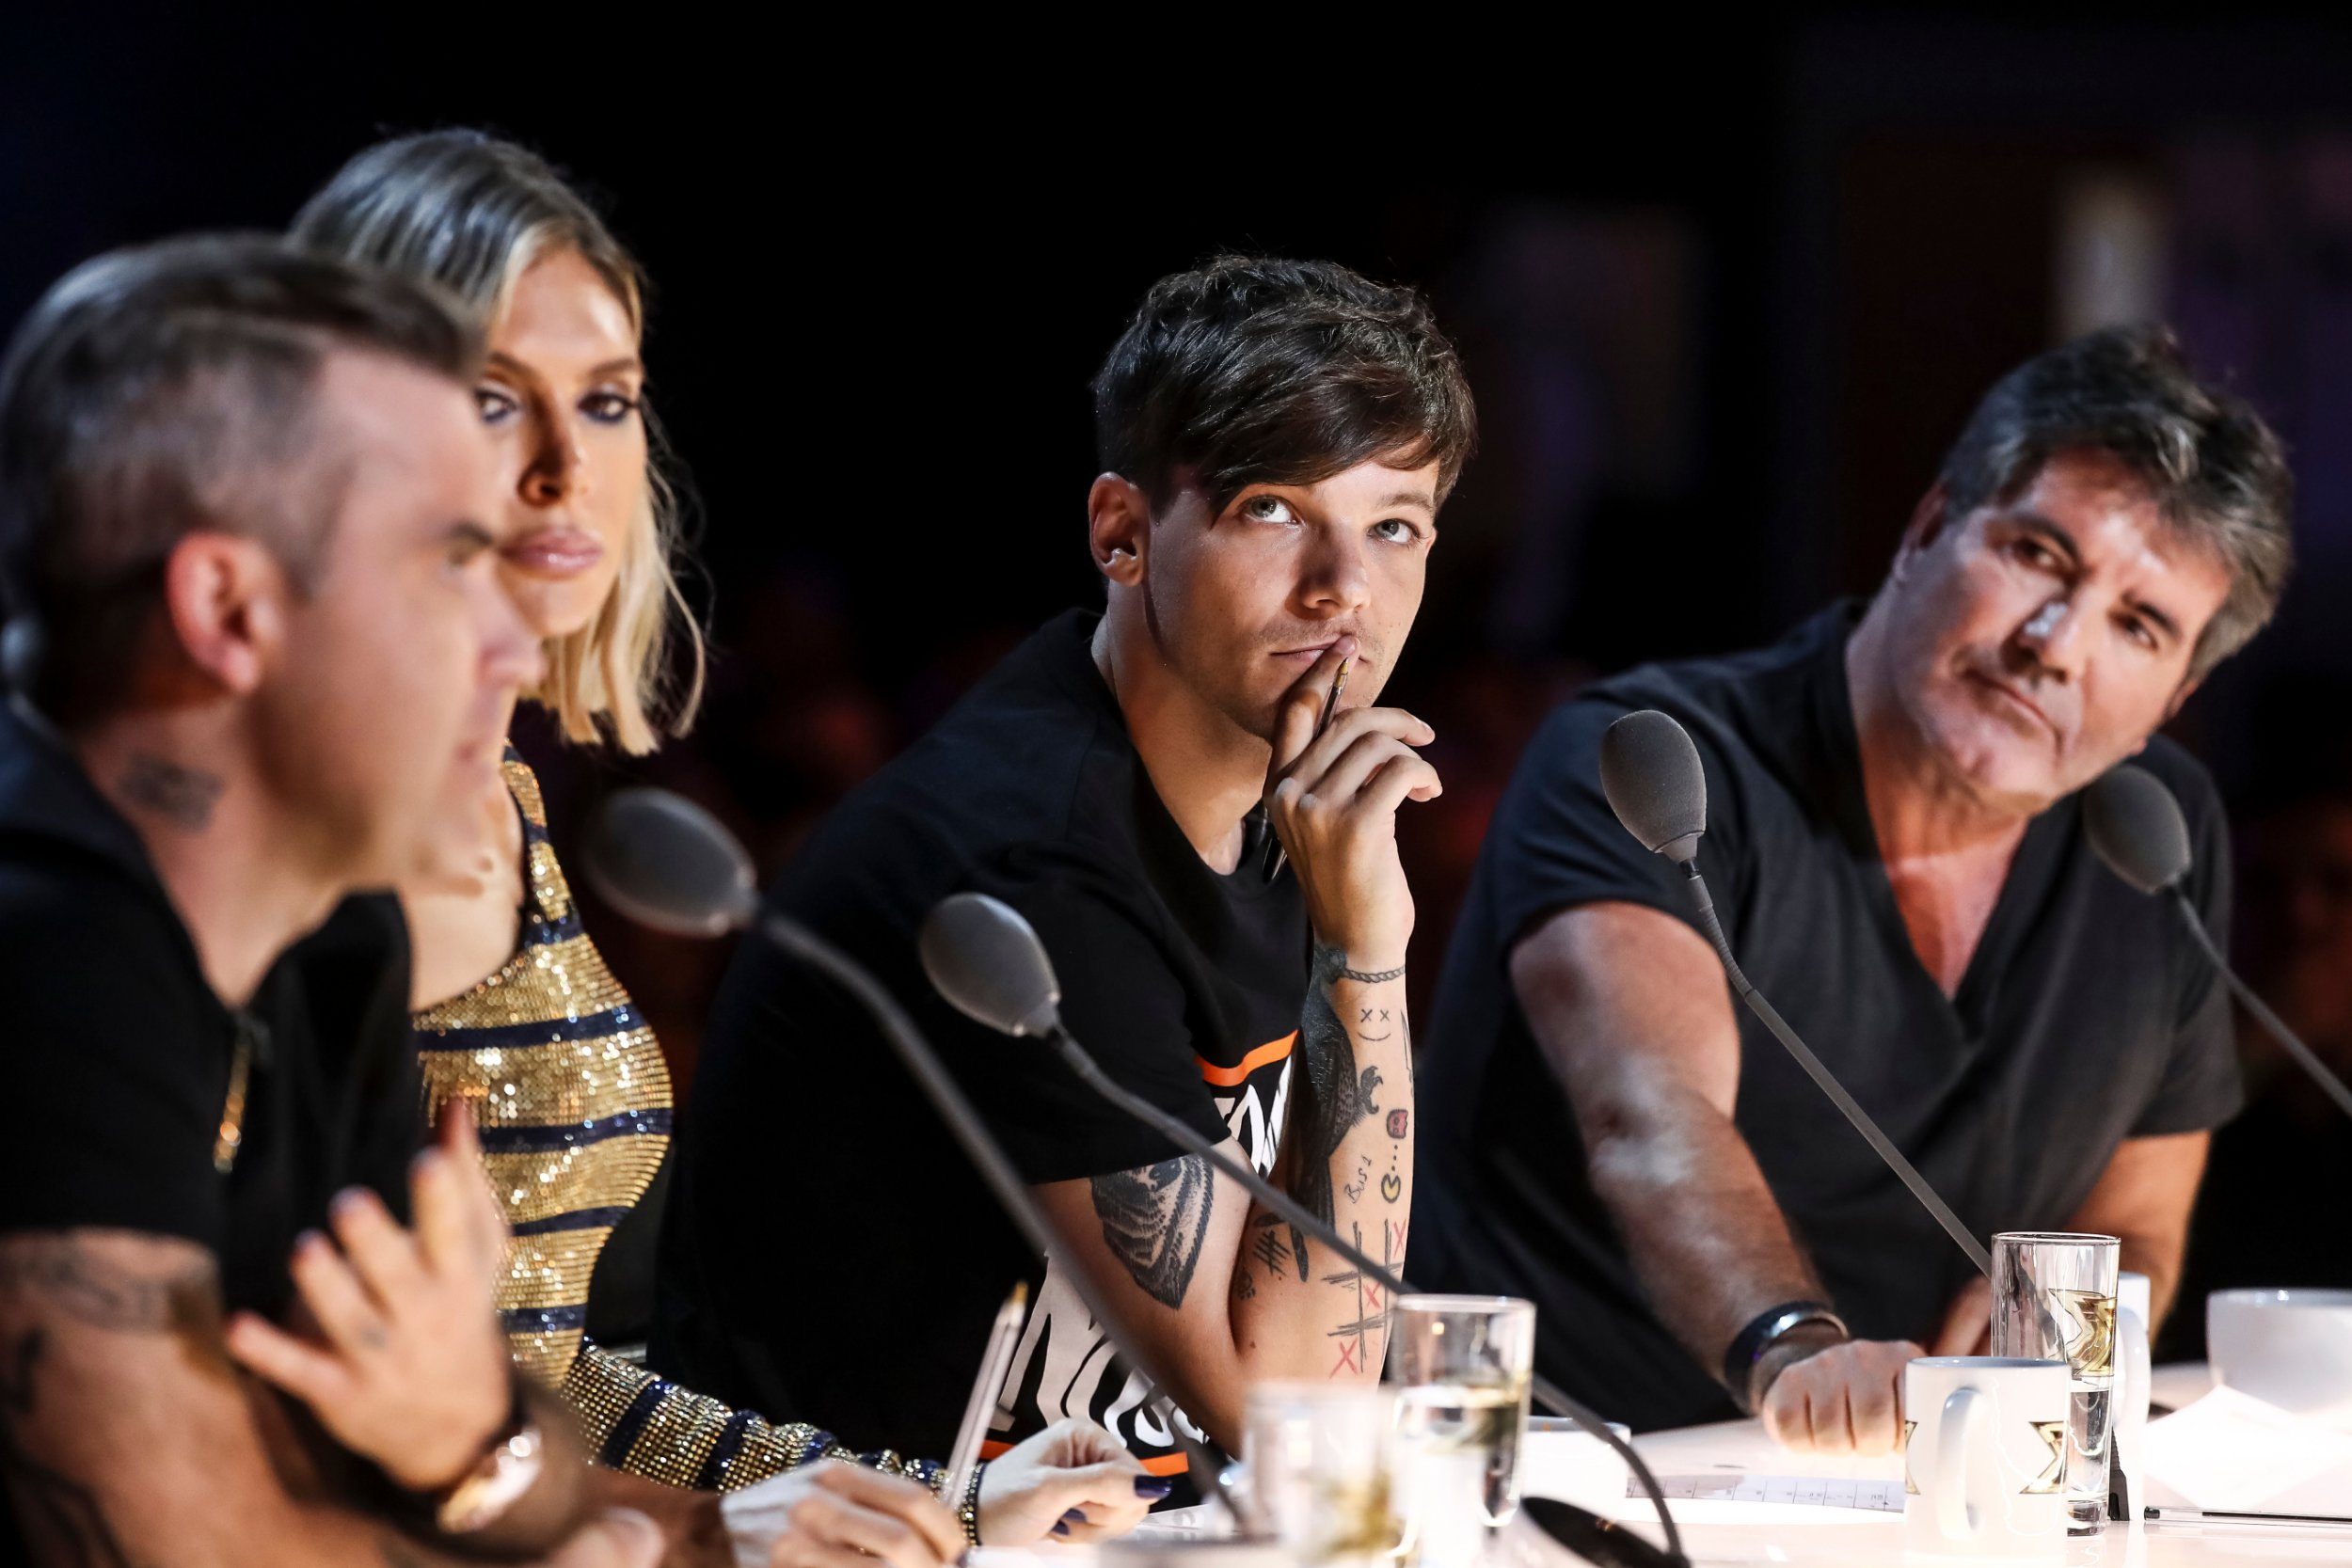 EDITORIAL USE ONLY - NO MERCHANDISING Mandatory Credit: Photo by Dymond/Thames/Syco/REX/Shutterstock (9874911am) Robbie Williams, Ayda Williams, Louis Tomlinson and Simon Cowell during Acacia K's performace 'The X Factor' TV show, Series 15, Episode 3, UK - 08 Sep 2018